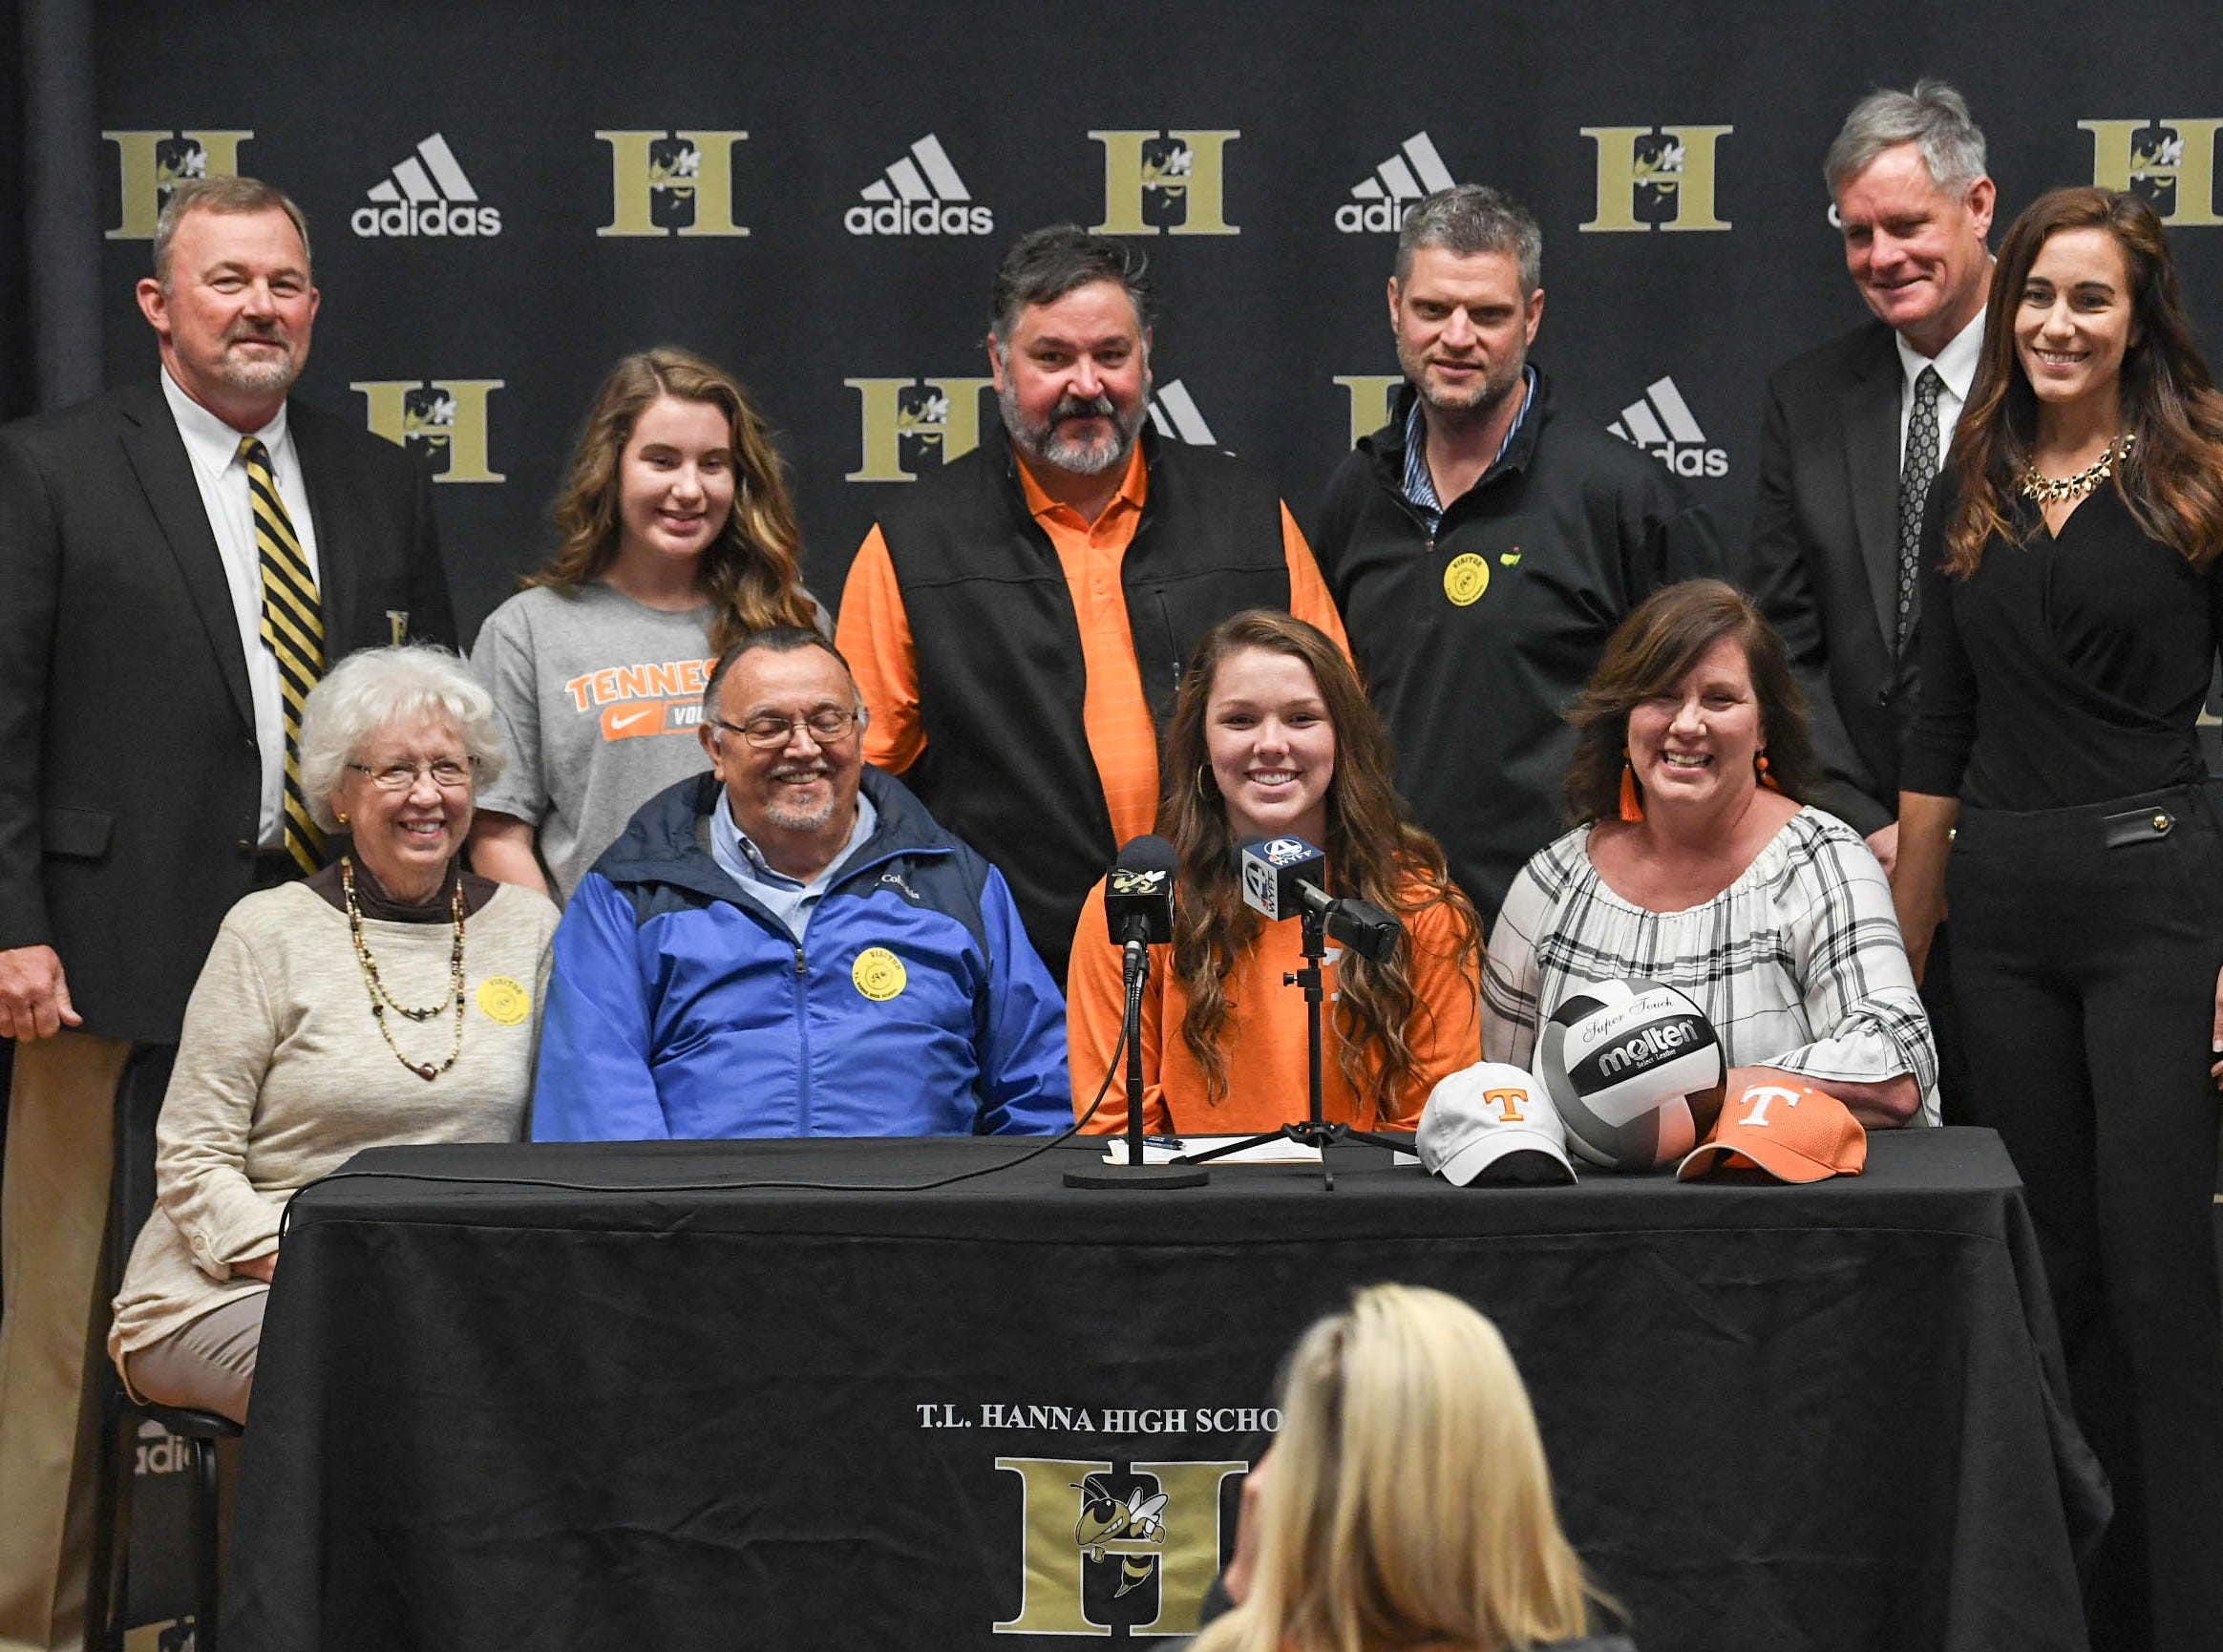 Maddie Bryant signs a letter of intent to play volleyball at the University of Tennessee, during a National Signing Day event at T.L. Hanna High School in Anderson on Wednesday.